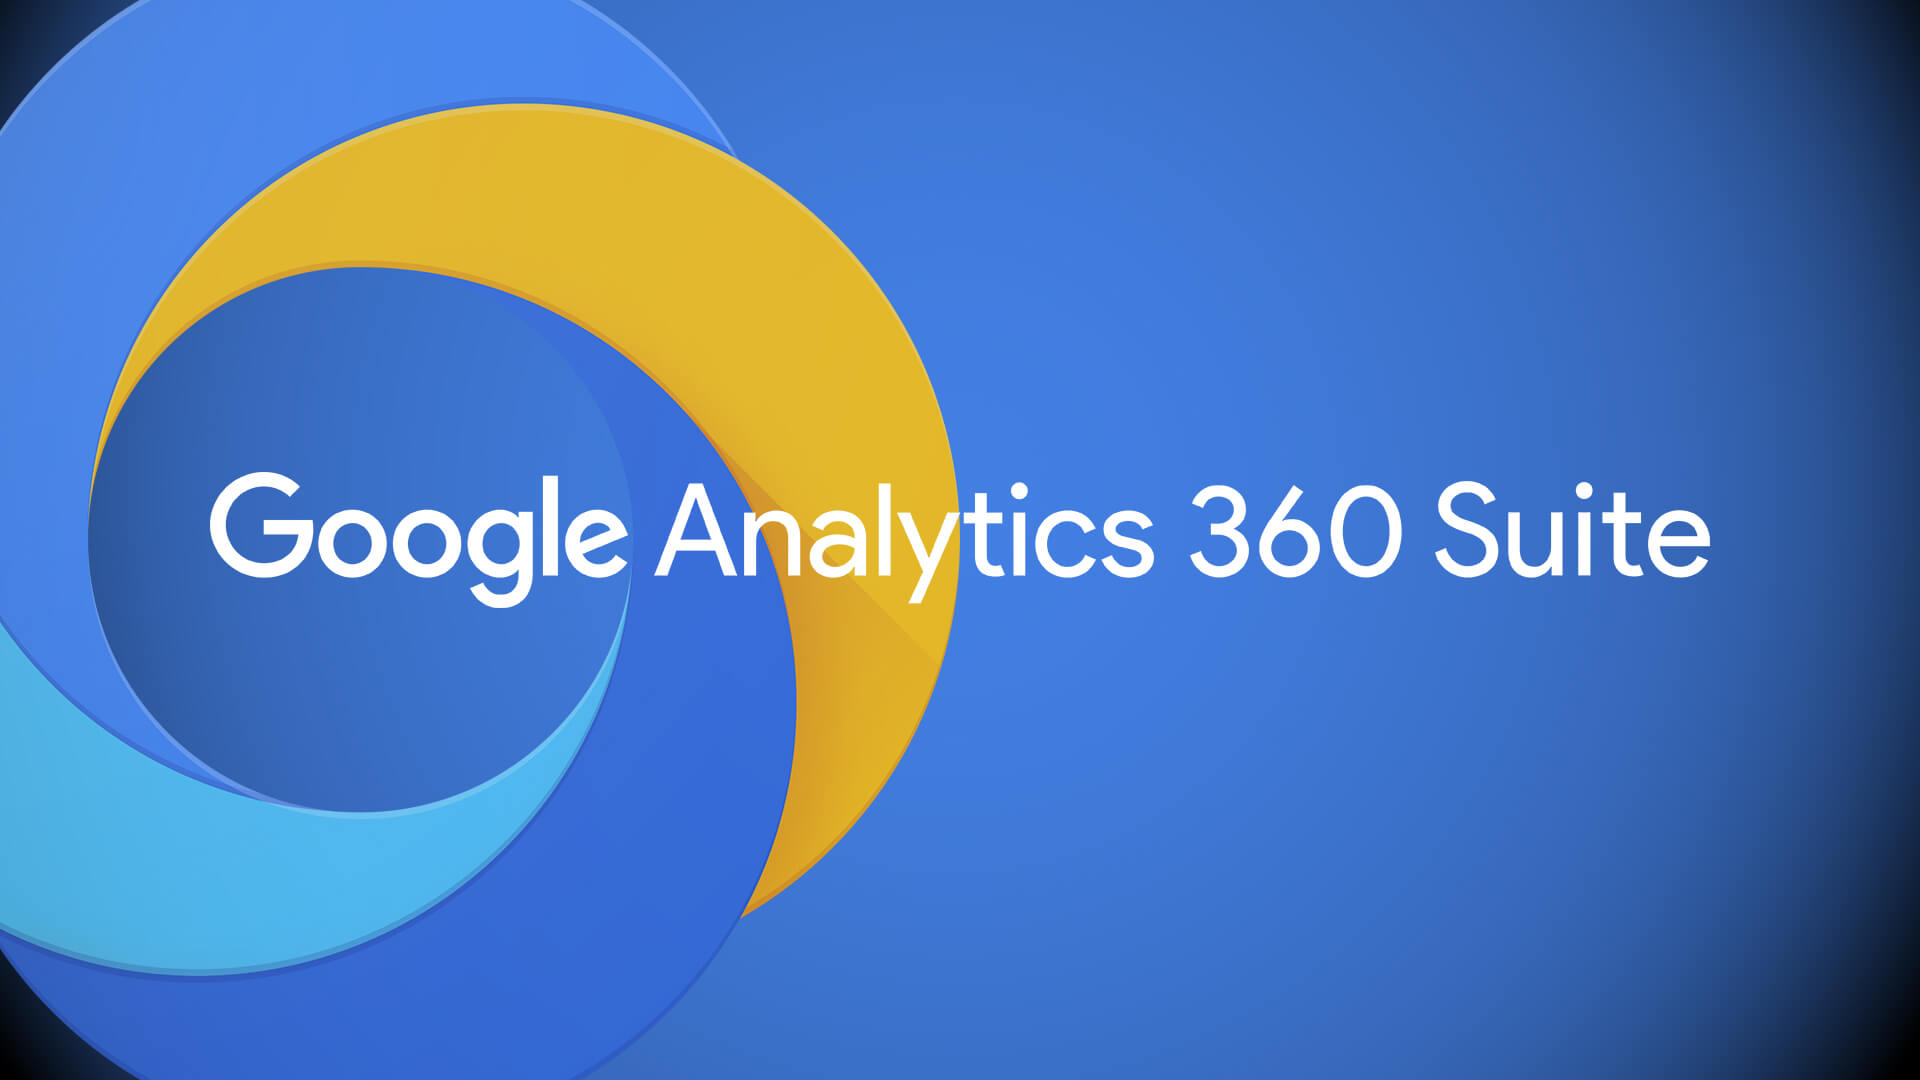 google-analytics-360a-1920.jpg